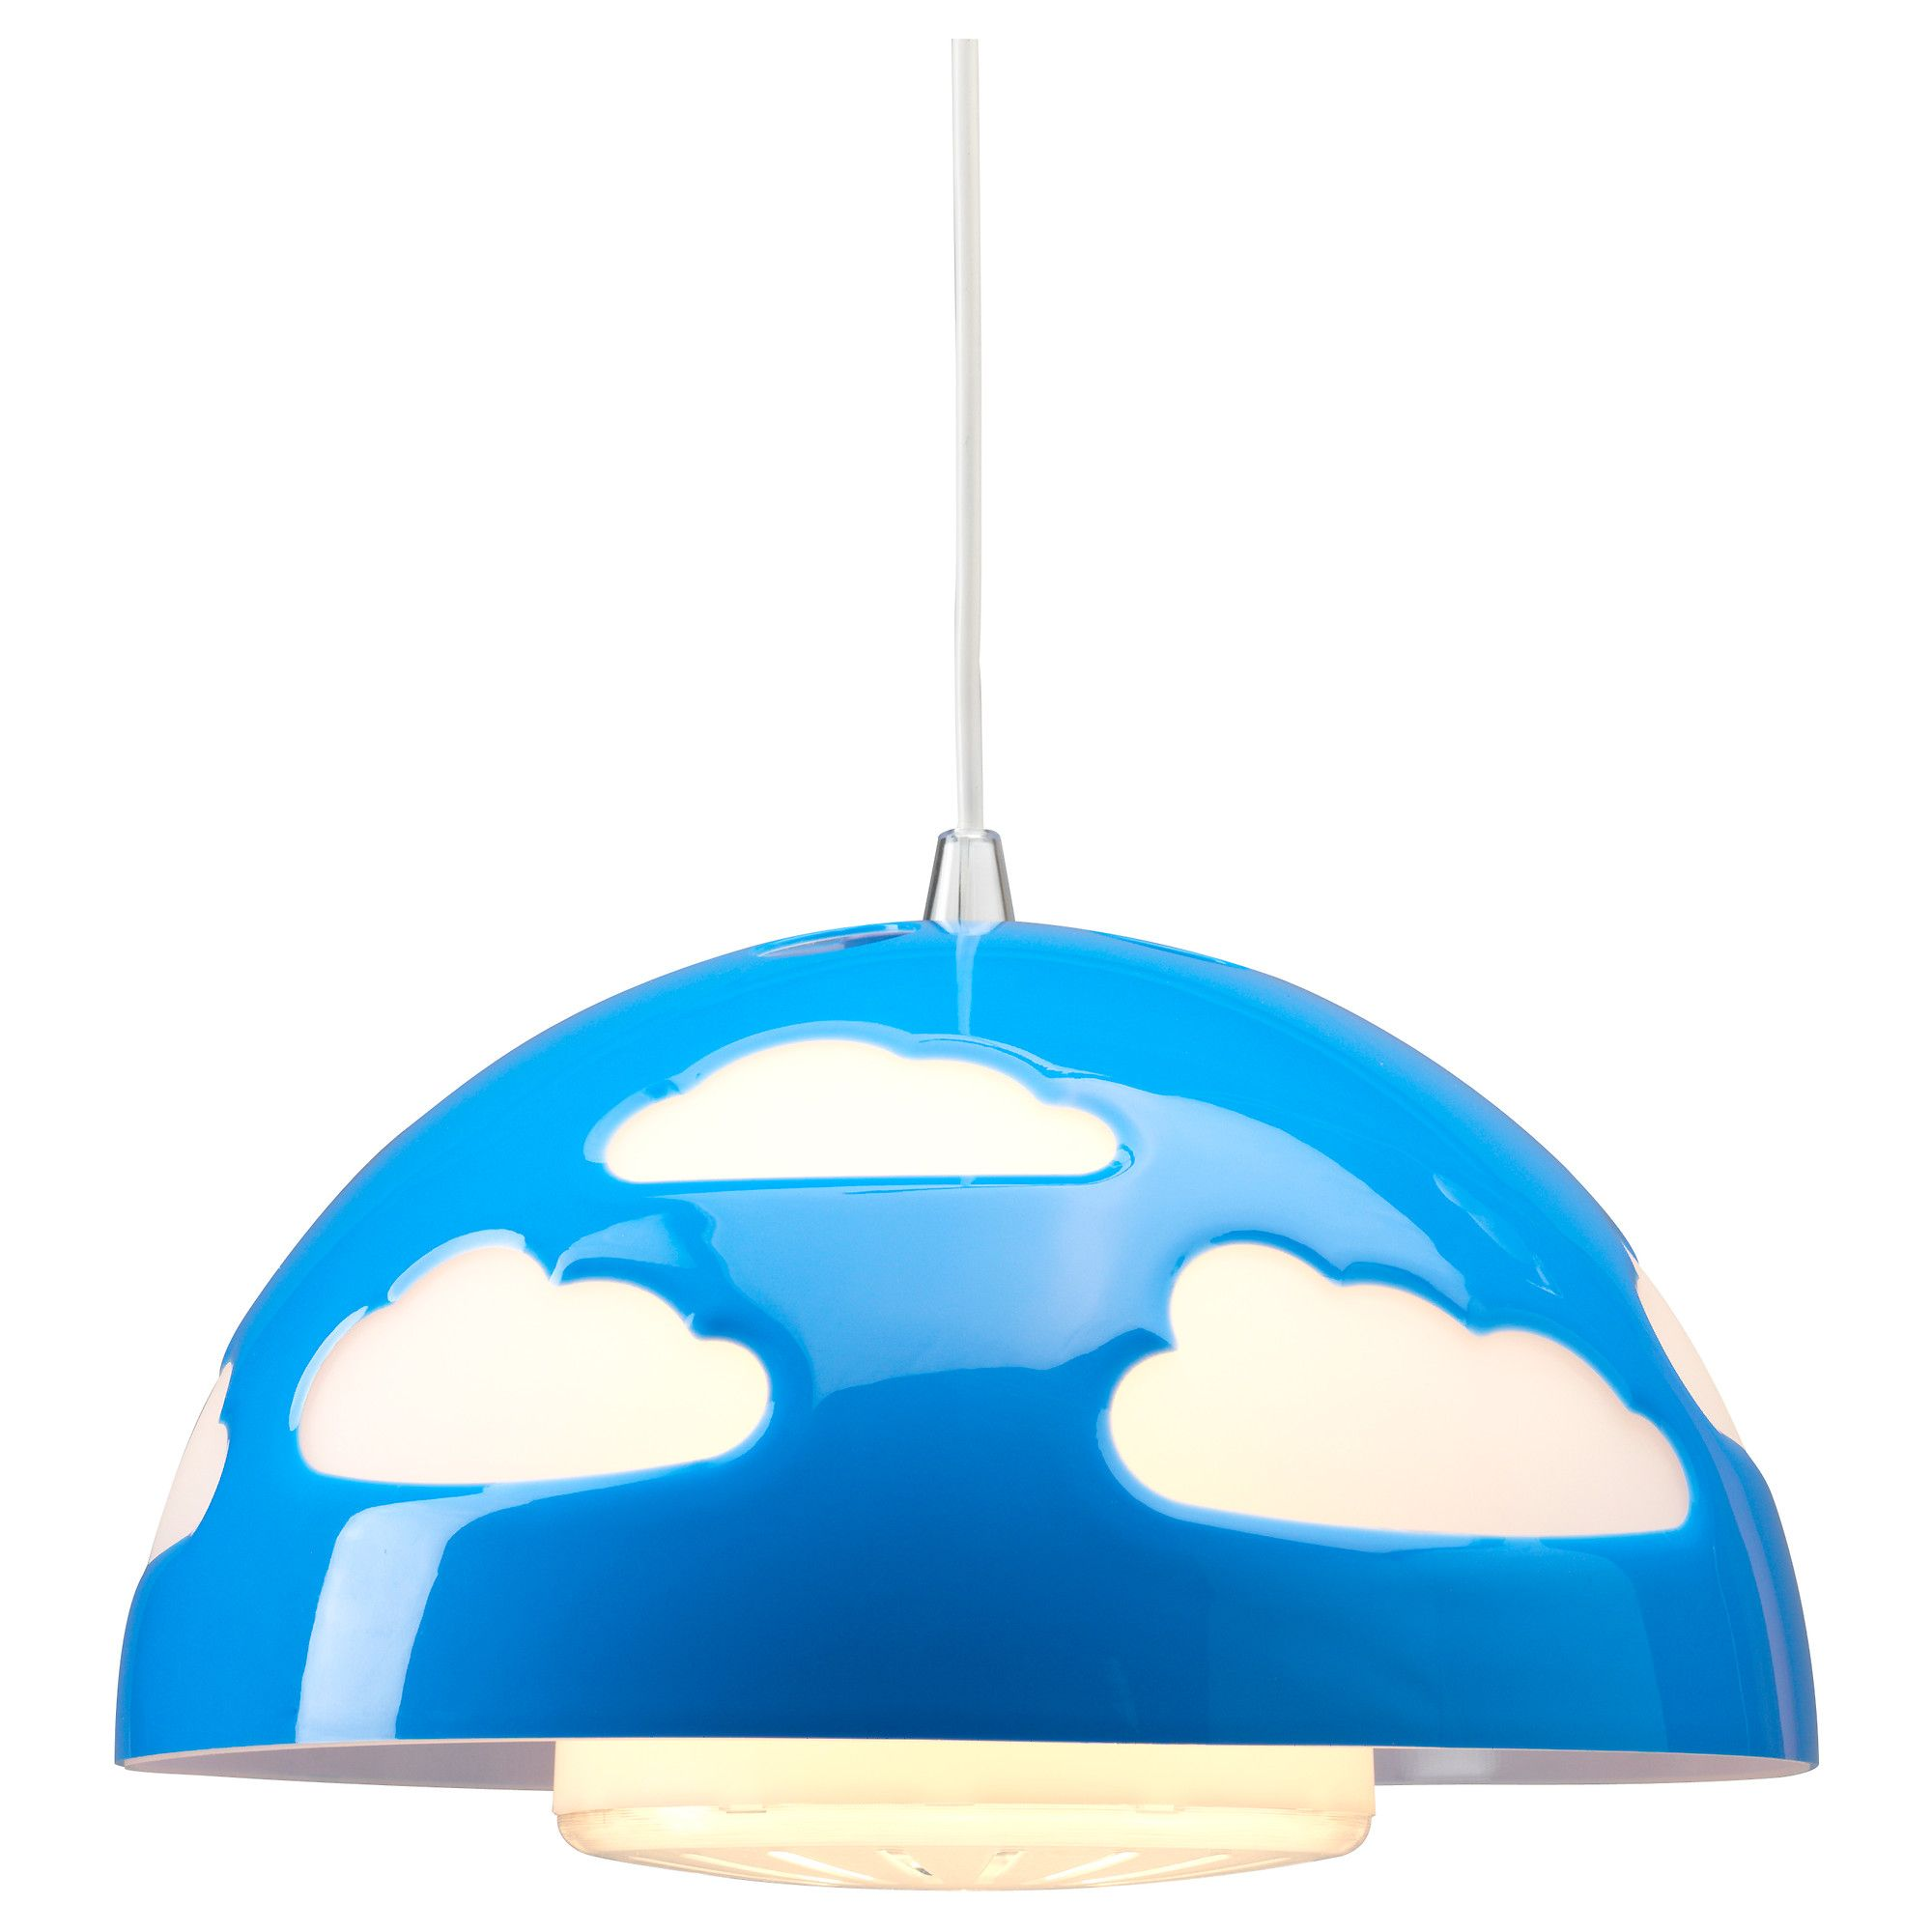 Skojig Pendant Lamp Blue Ikea Perfect For The Nintendo Room  ~ Lampara Ventilador De Techo Ikea